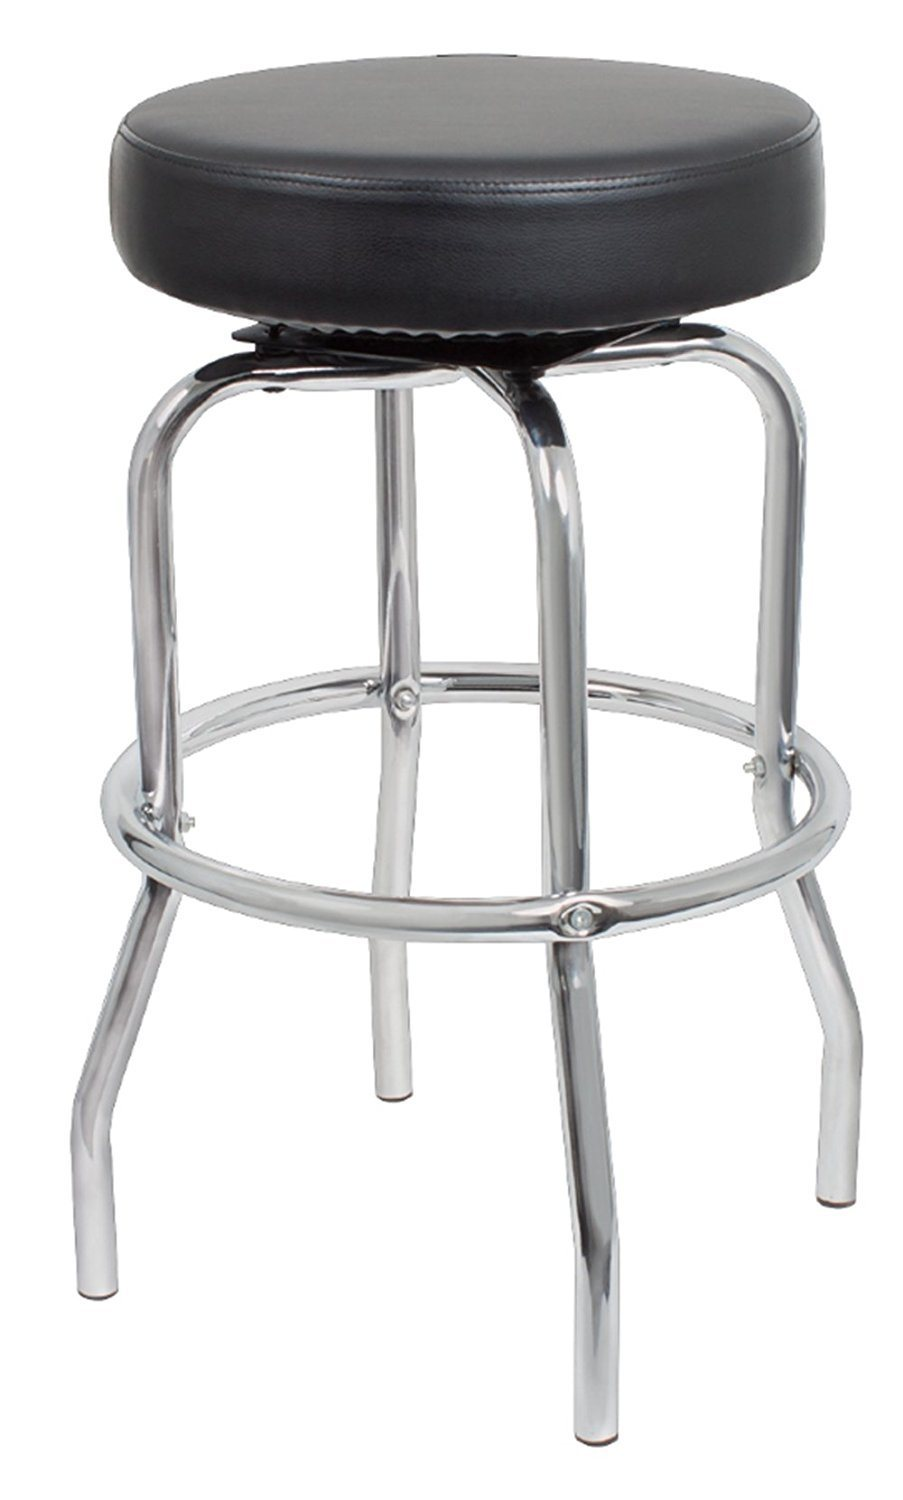 8. Proline 24inch Faux Leather best  Guitar Stool